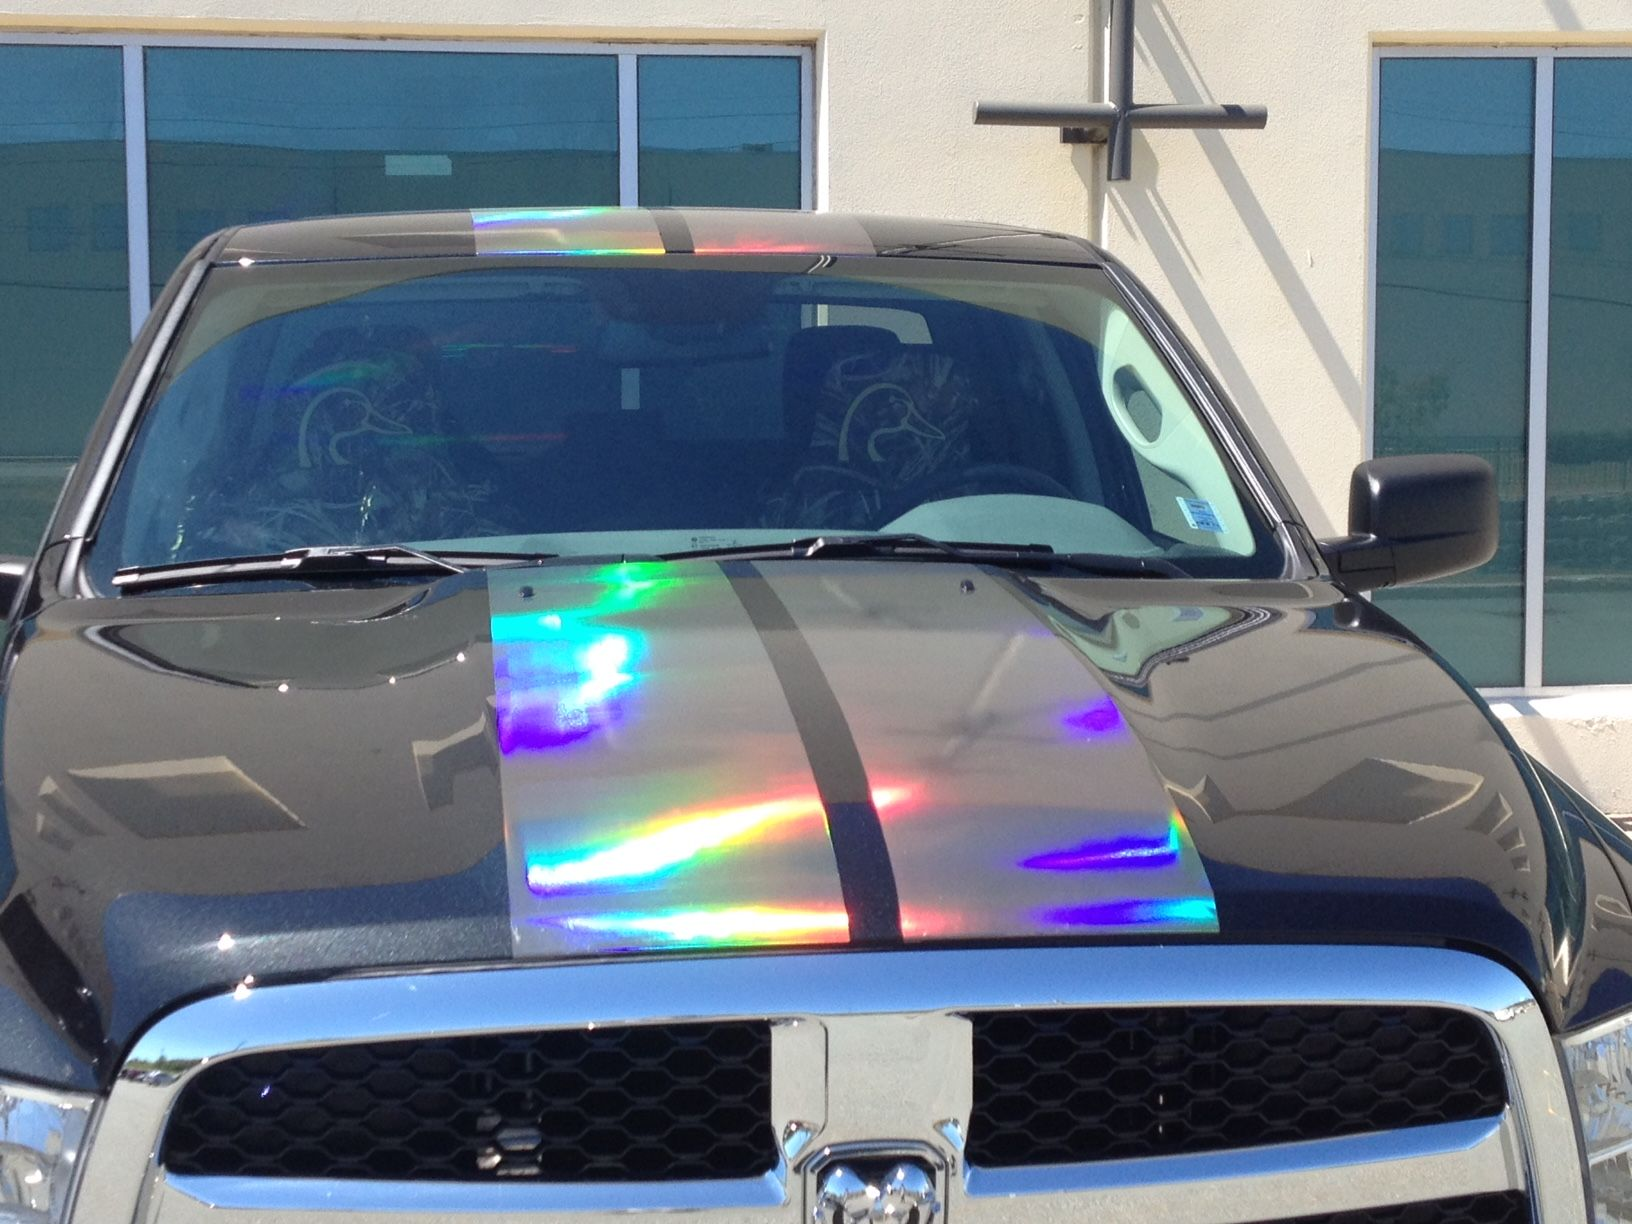 2016 DODGE RAM 1500 WITH CONCEPT VINYL FROM VVIVID VINYL